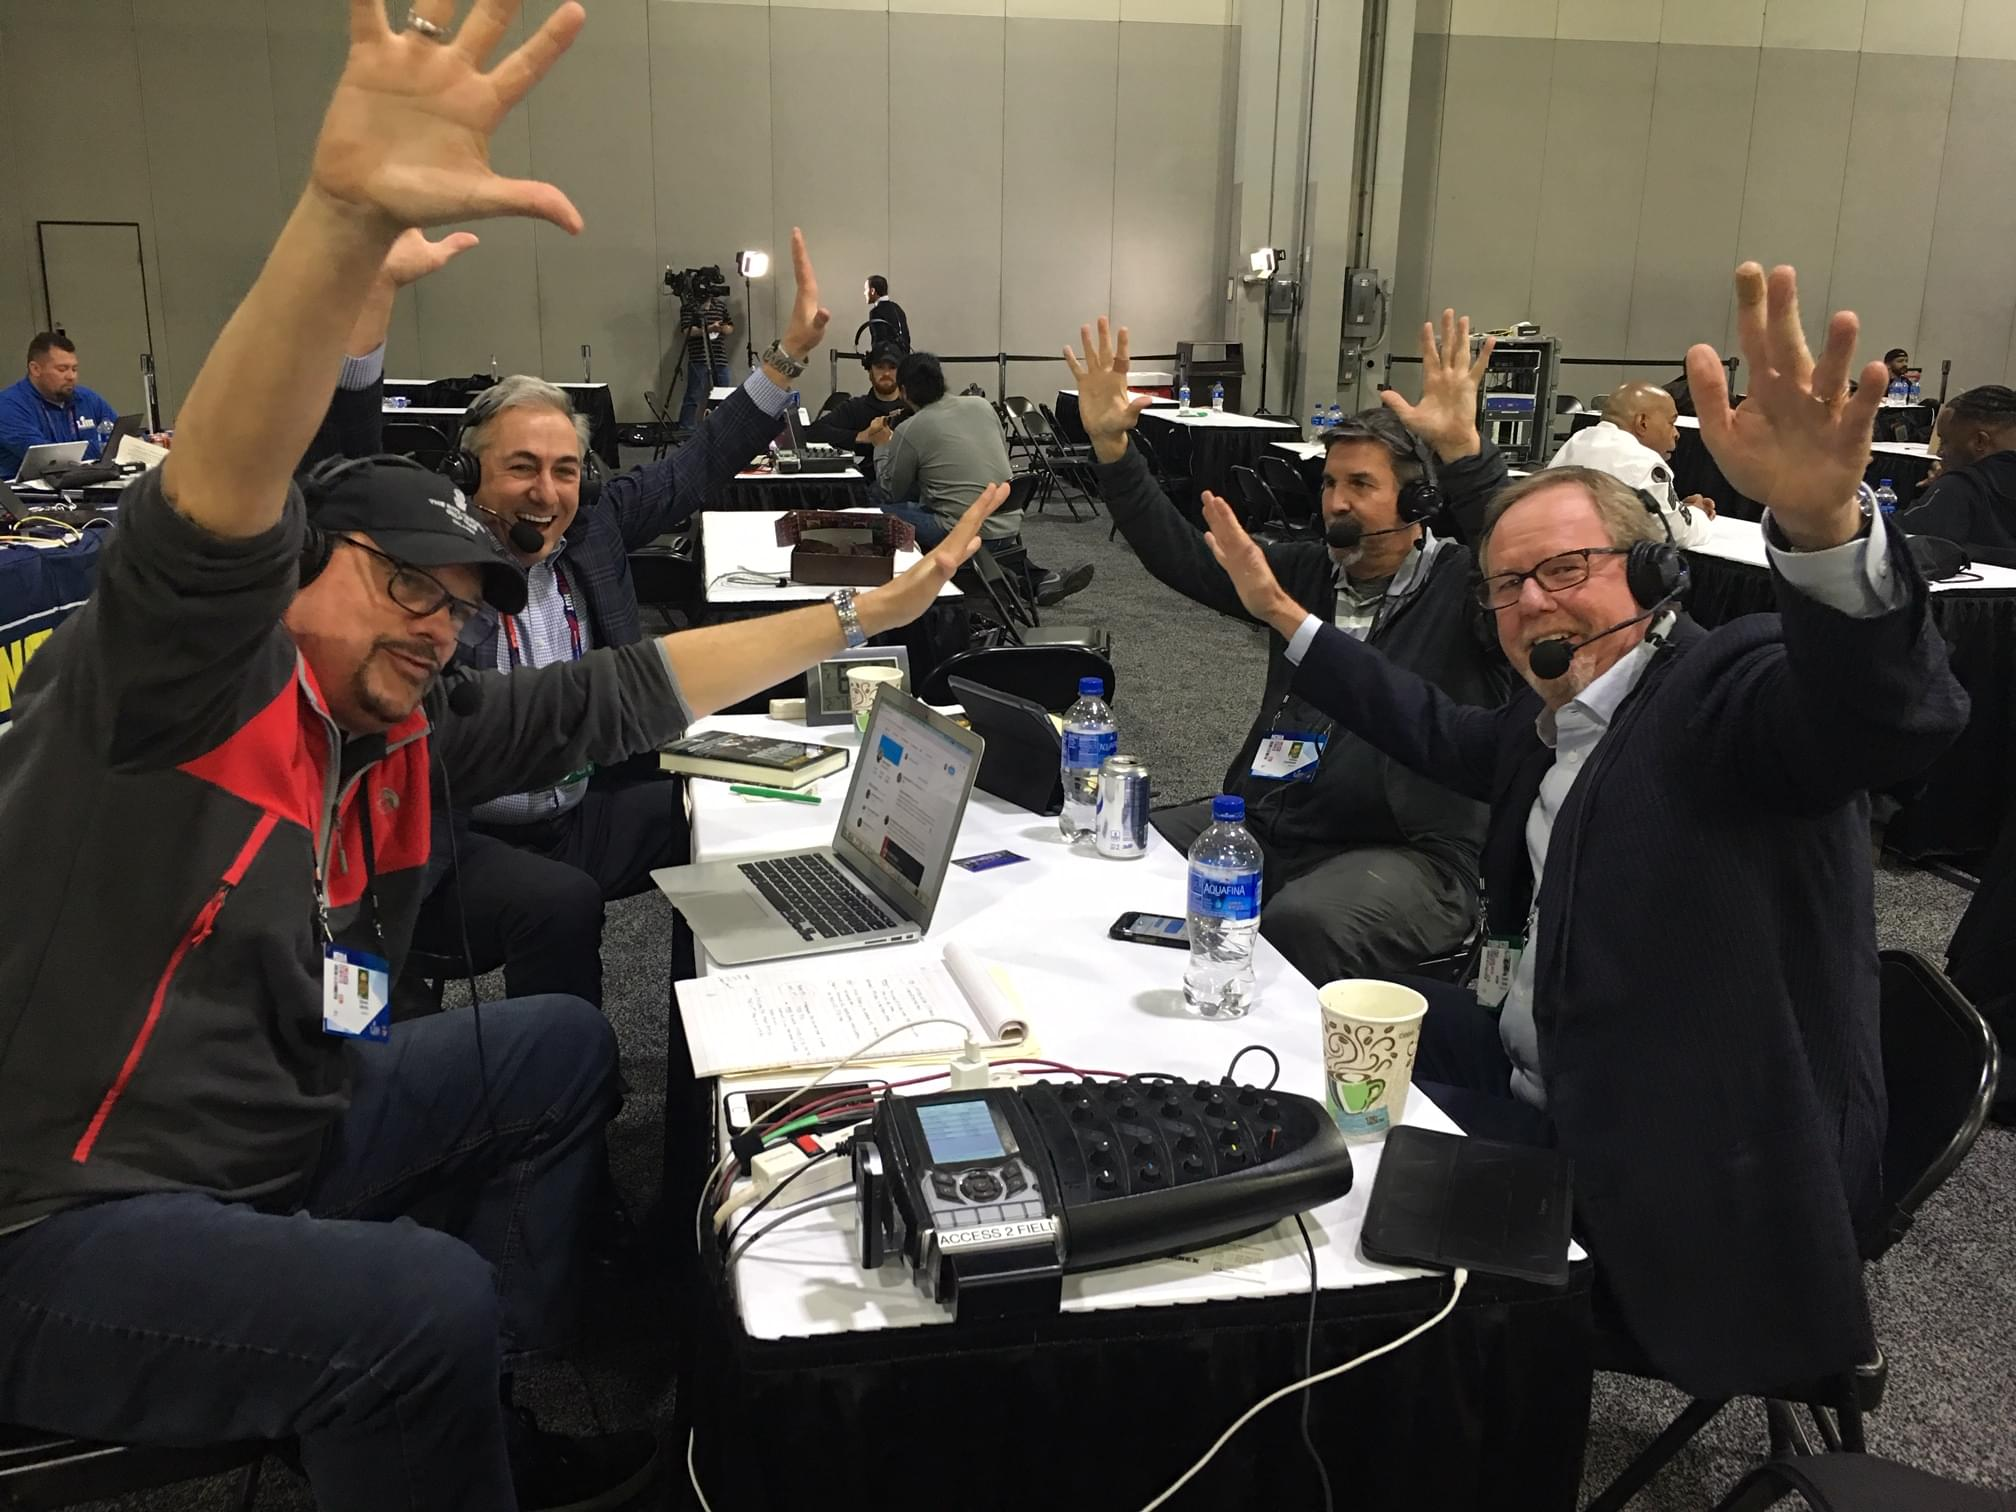 DAC – Super Bowl Roundtable with Ed Werder & Sal Paolantonio